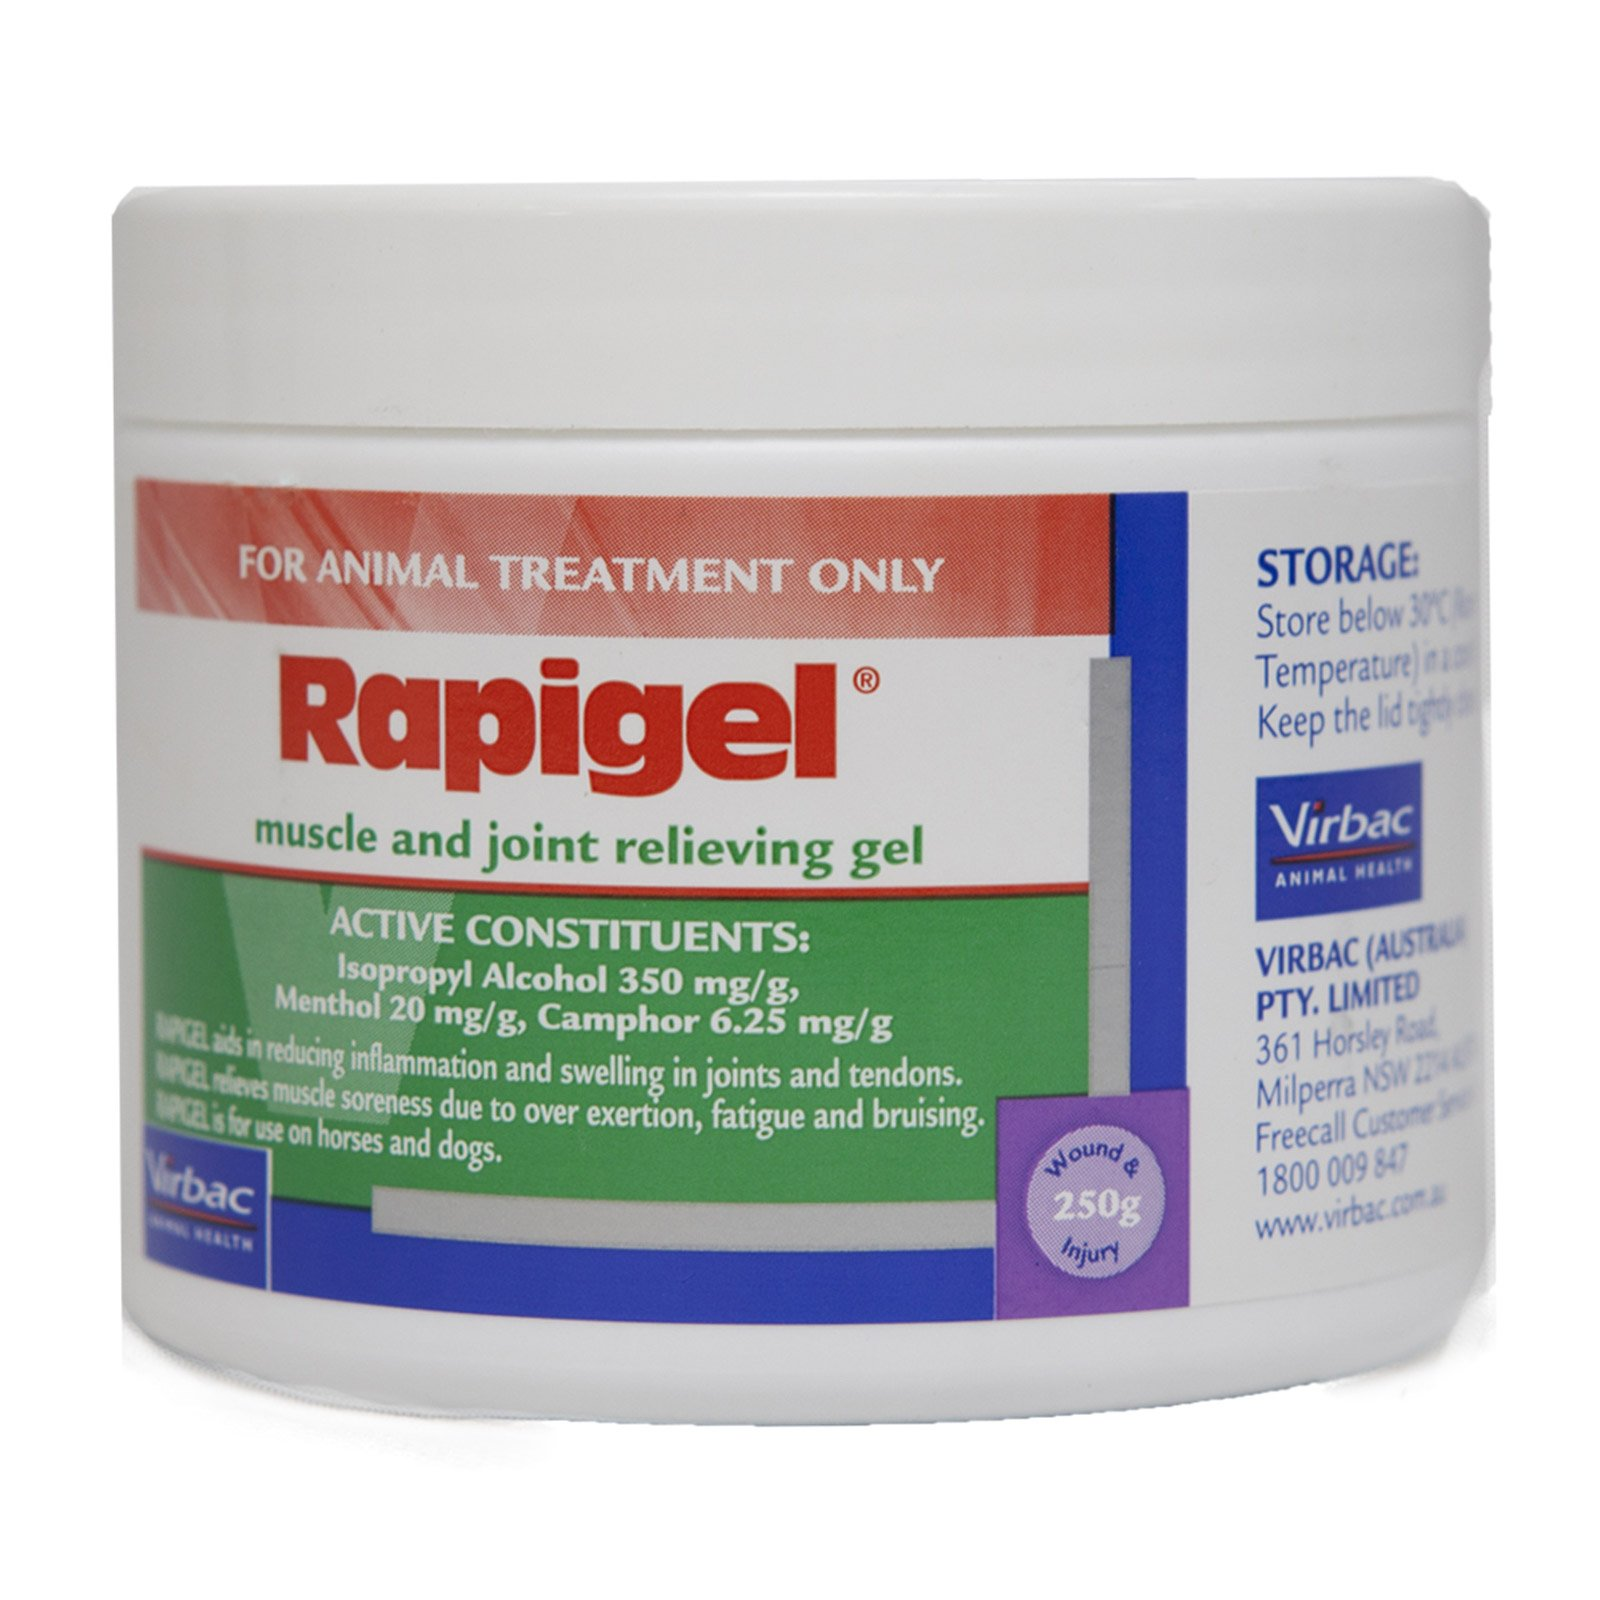 Rapigel Muscle And Joint Relieving Gel